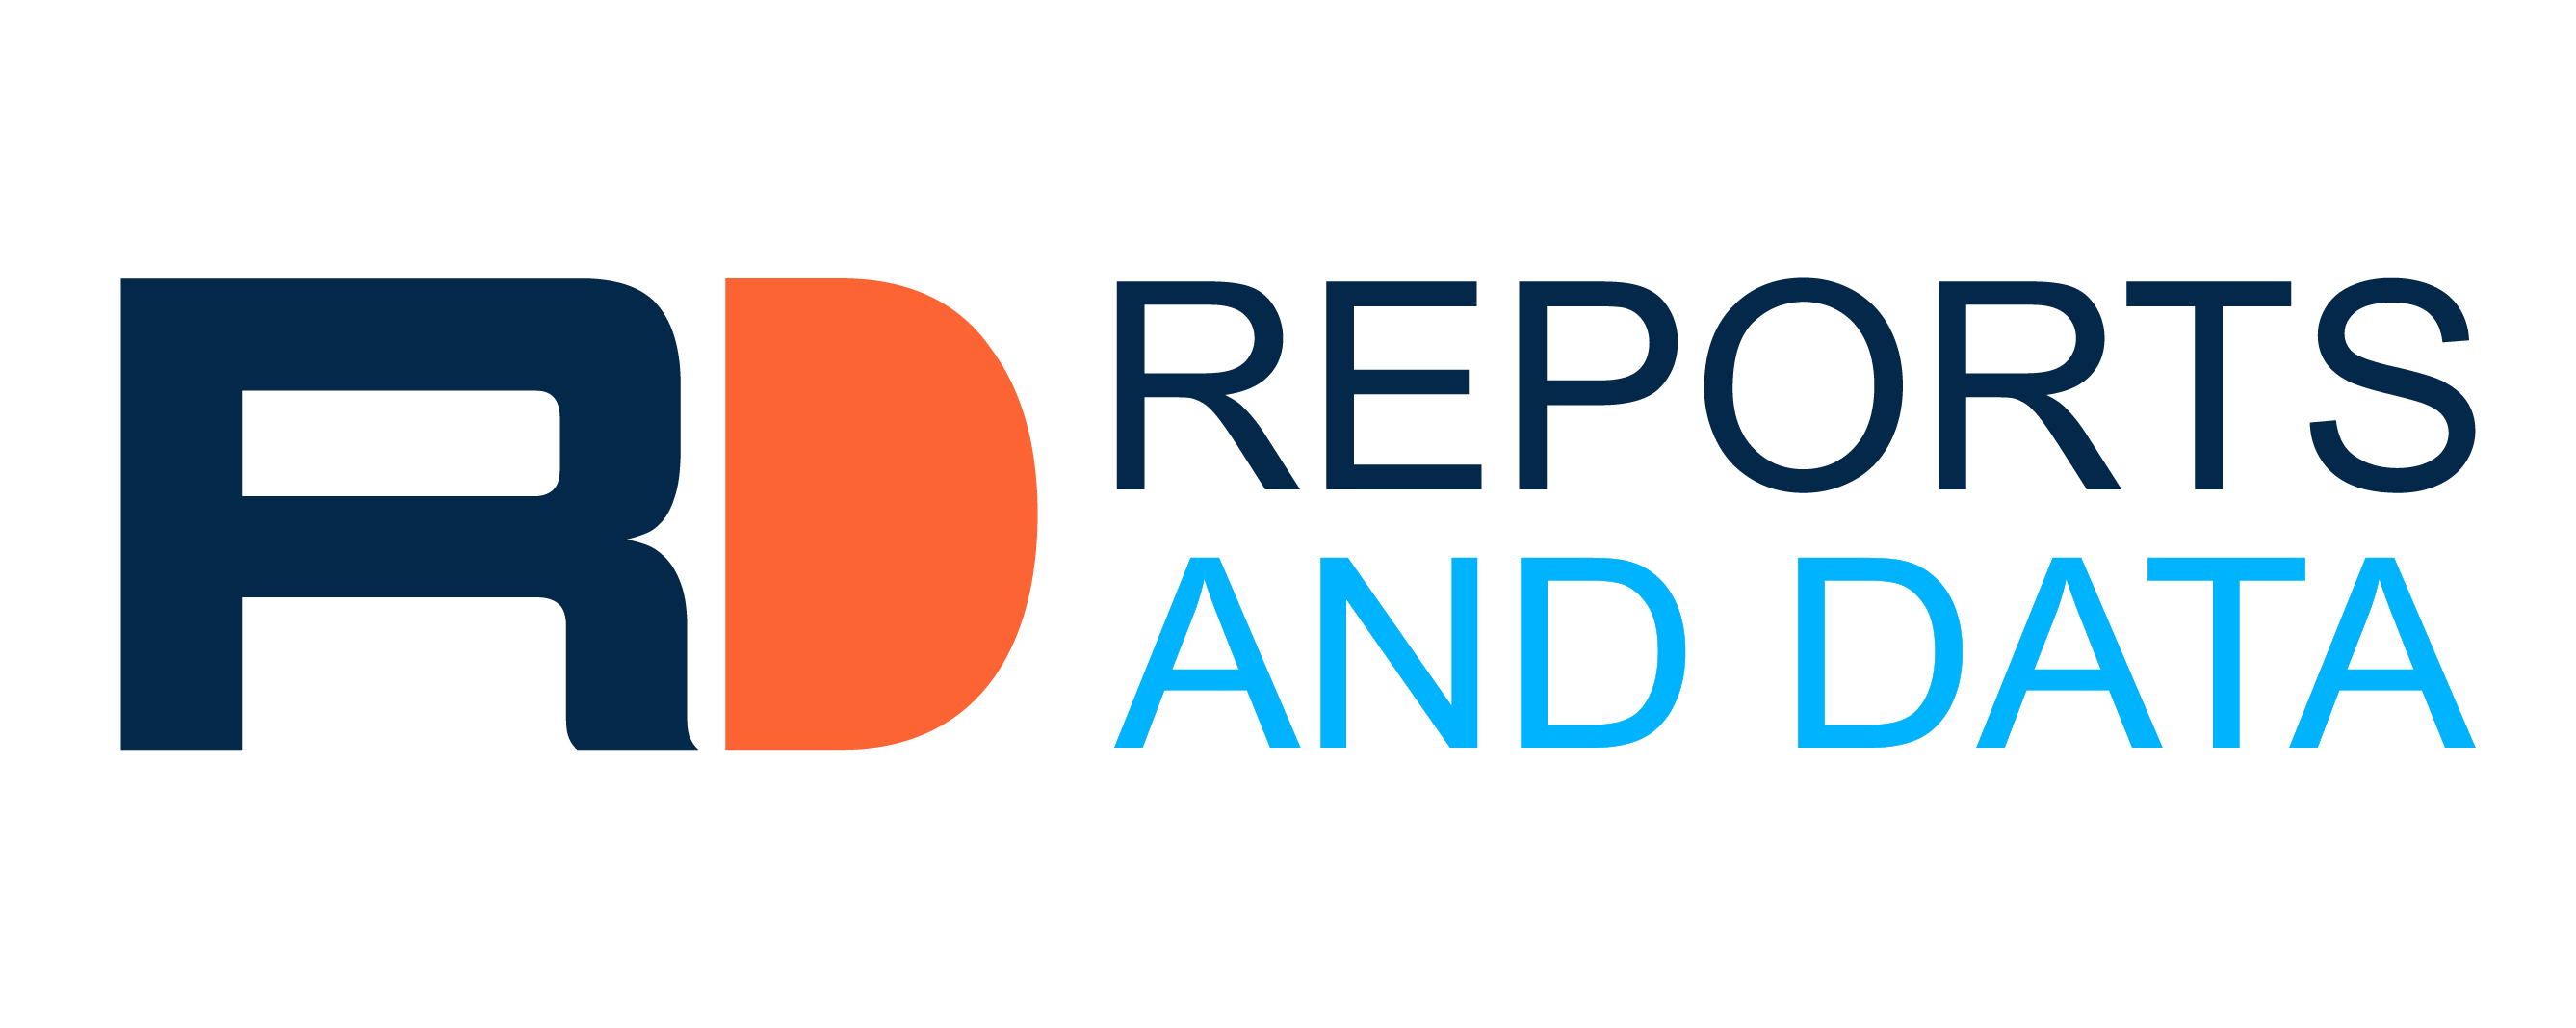 Alopecia Market Trends, Analysis, Demand and Global Industry Research Report, Region, and Segment Forecasts, 2020-2027 6